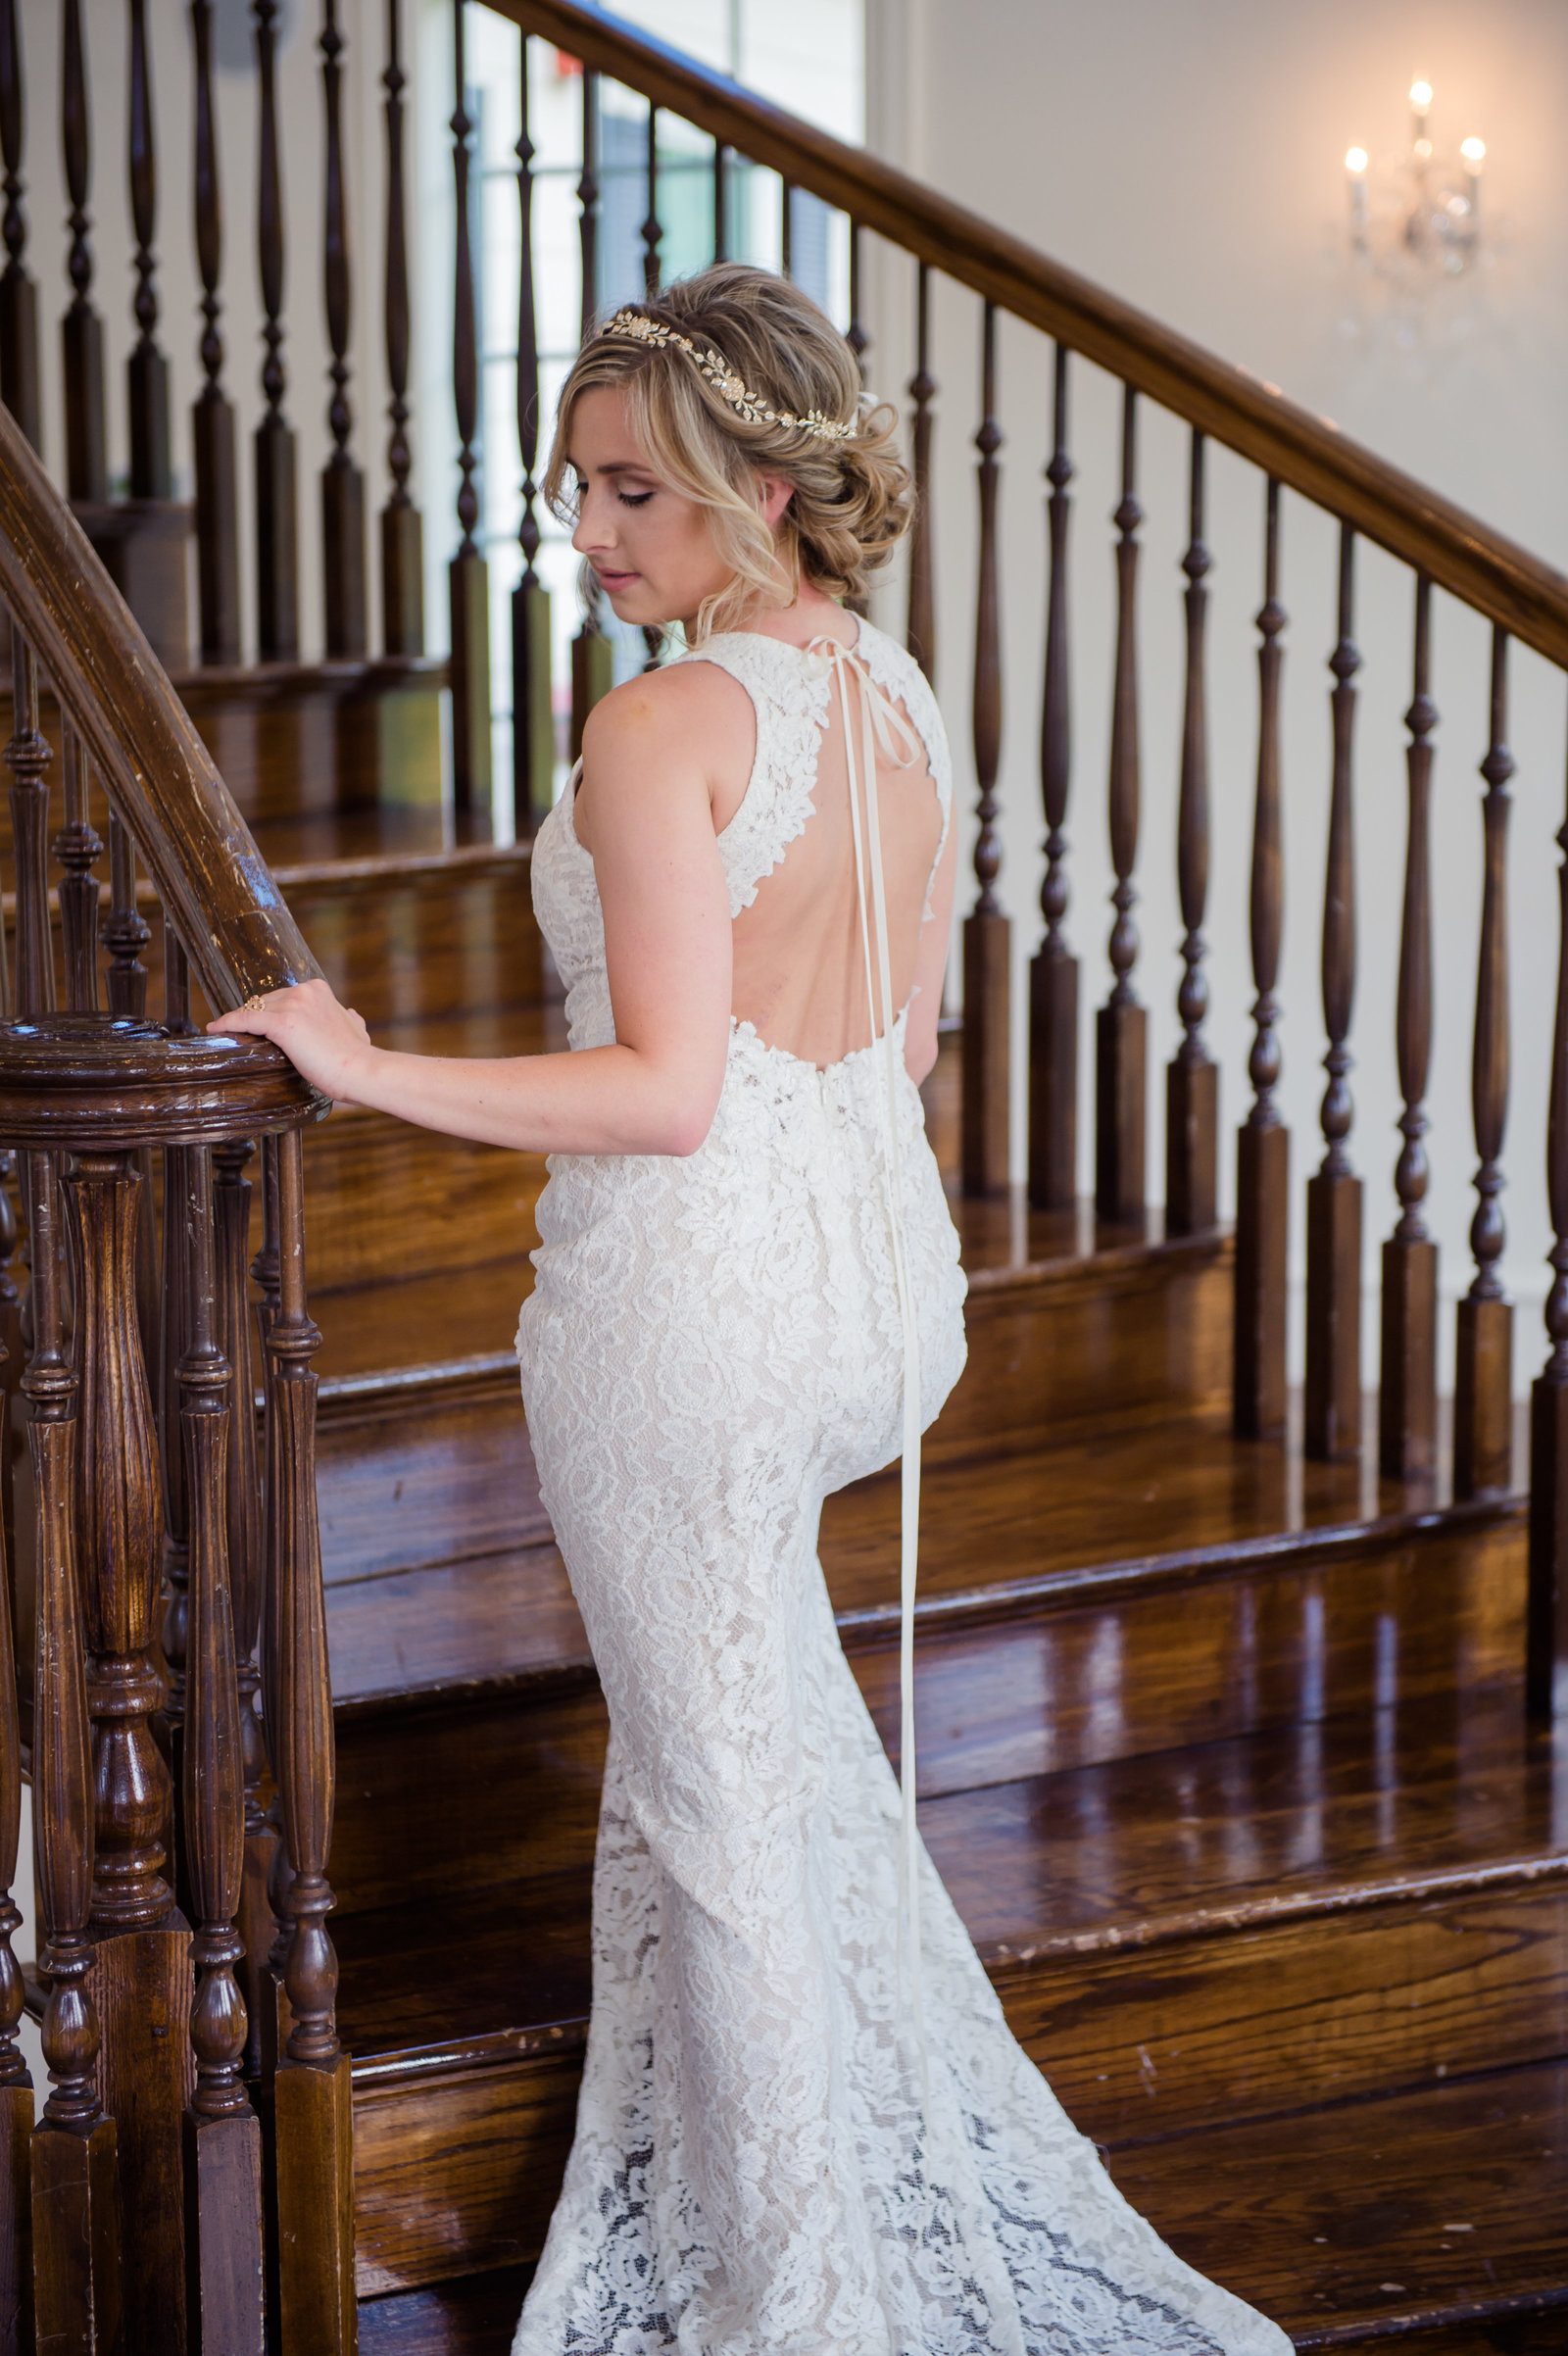 Bridals at The Milestone by Brittany Barclay Photography